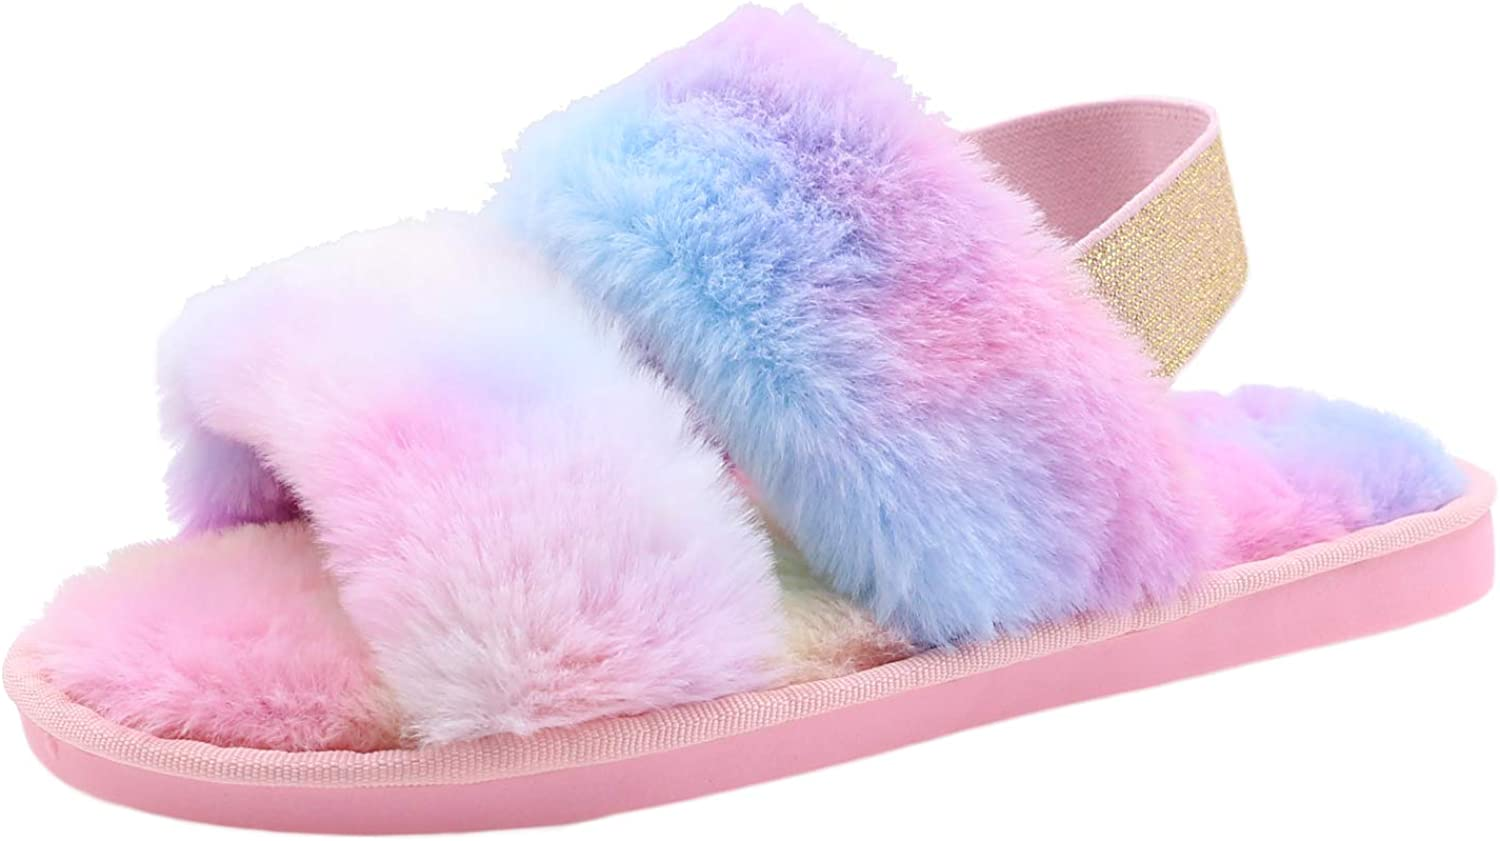 Women's House Fuzzy Slipper Fluffy Sandals Slides Leopard Print Soft Warm Comfy Cozy Bedroom Open Toe House Indoor Outdoor Slippers Sandals with Elastic Strap (Rainbow, Numeric_5)